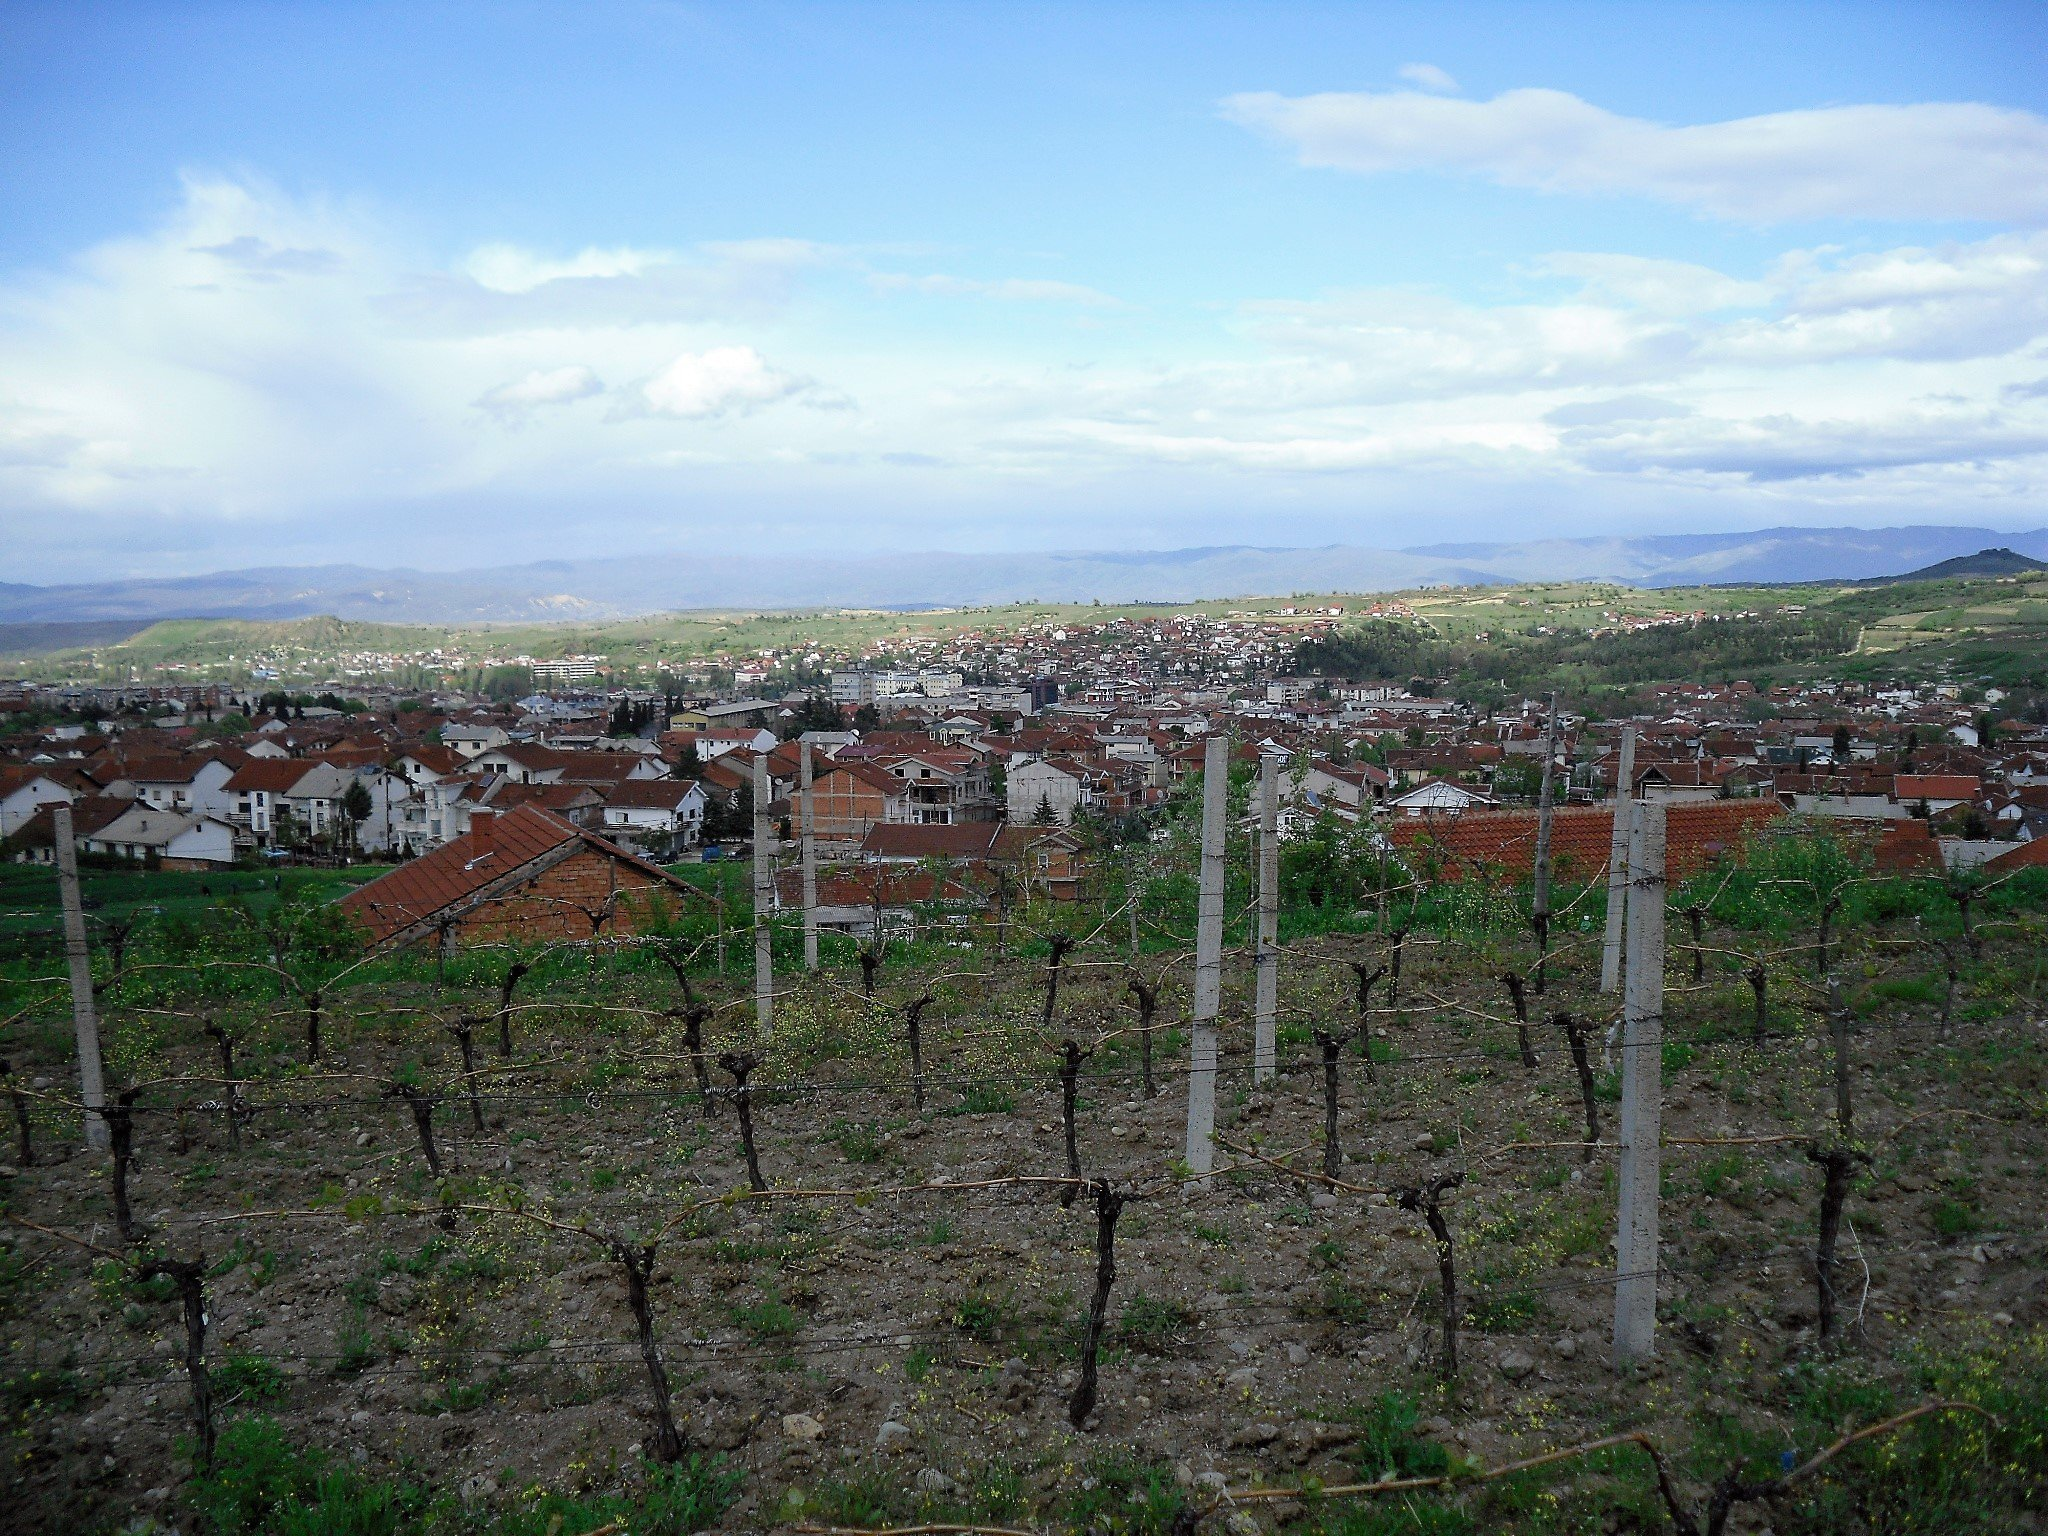 Kavadarci: the place for wine lovers